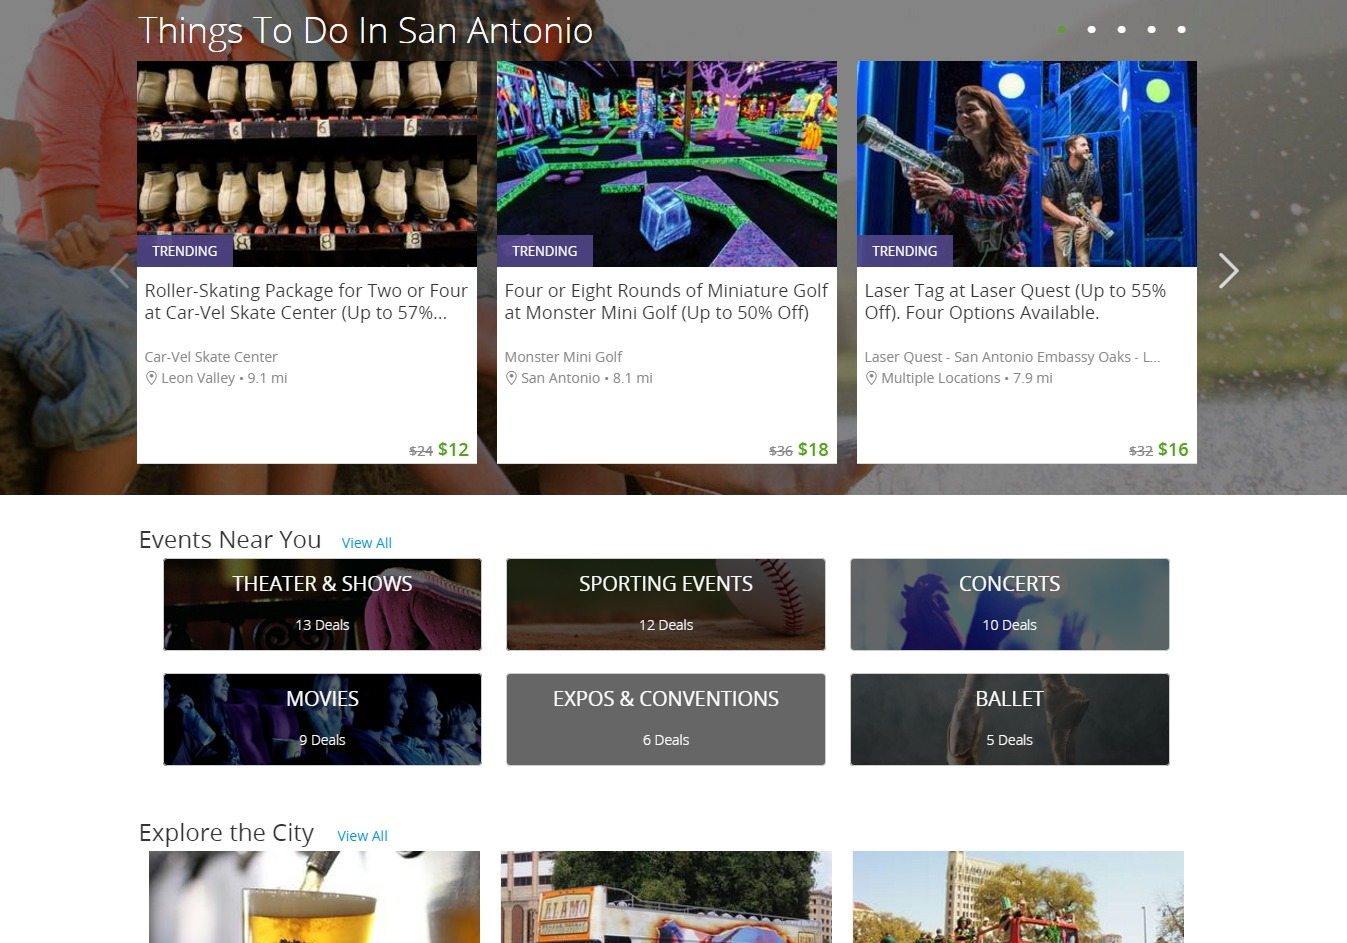 groupon-things-to-do-is-a-great-way-to-explore-your-city-for-a-great-price-ad